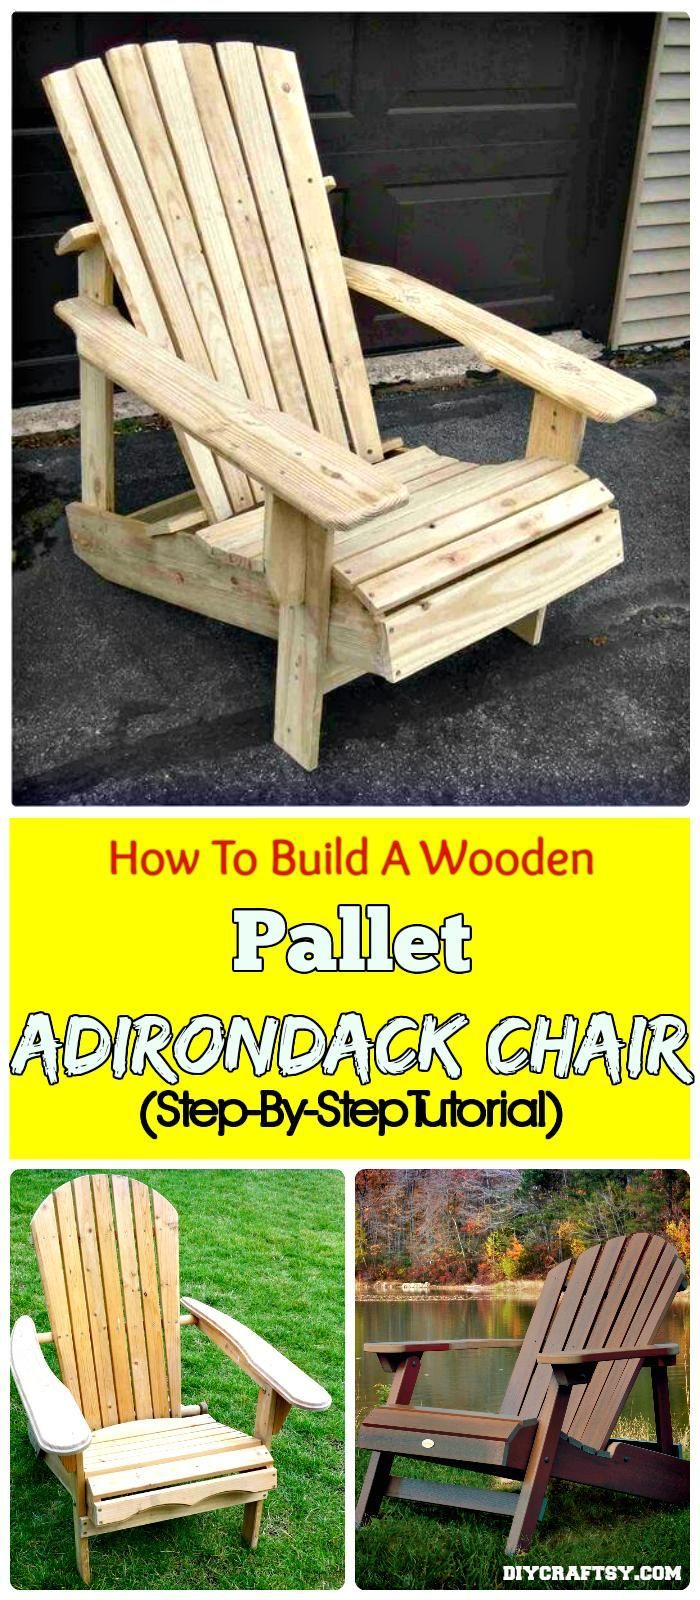 How To Build A Wooden Pallet Adirondack